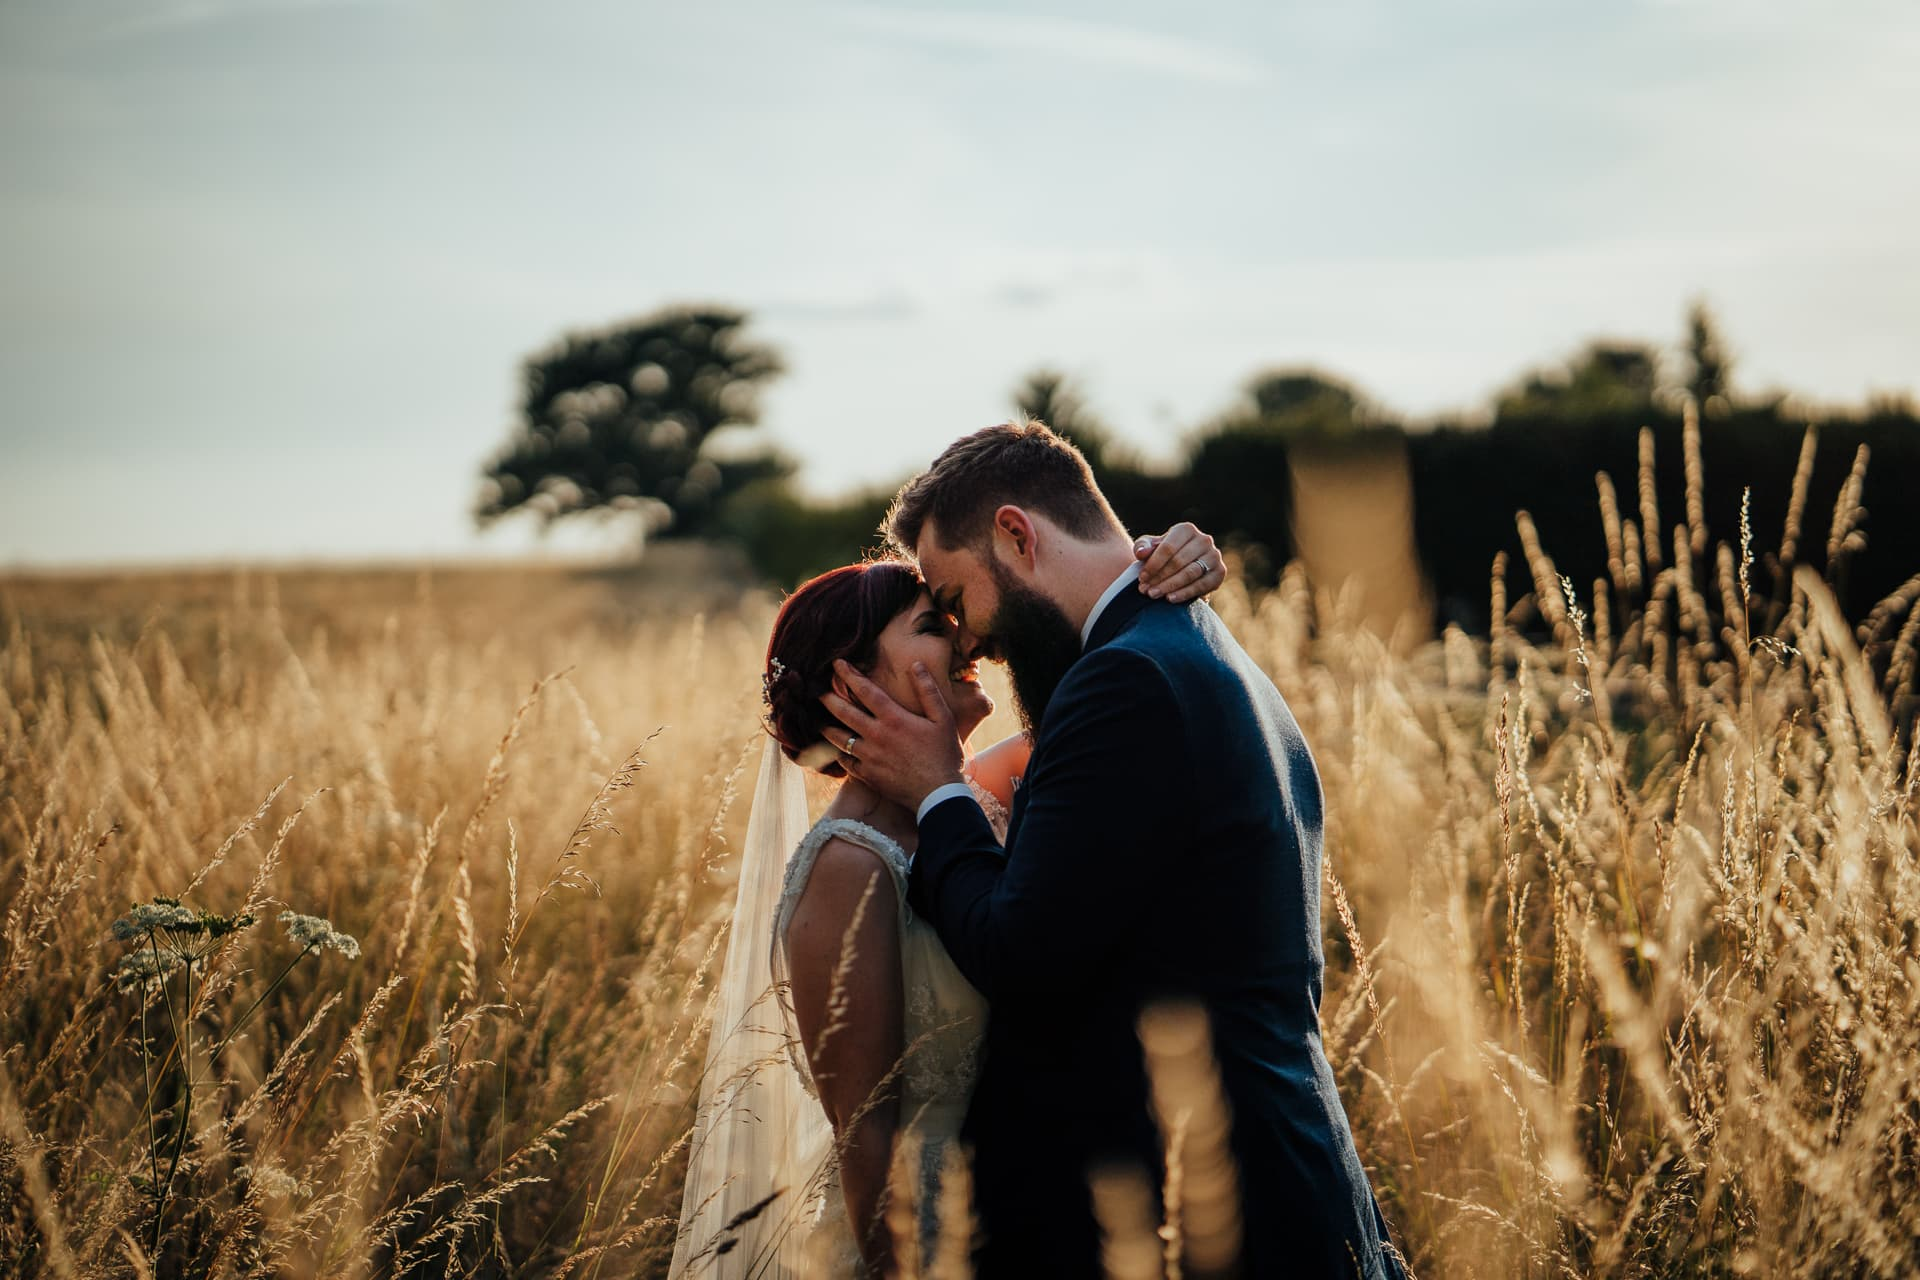 Groom holding his brides cheek in gorgeous golden hour sunset in long grass